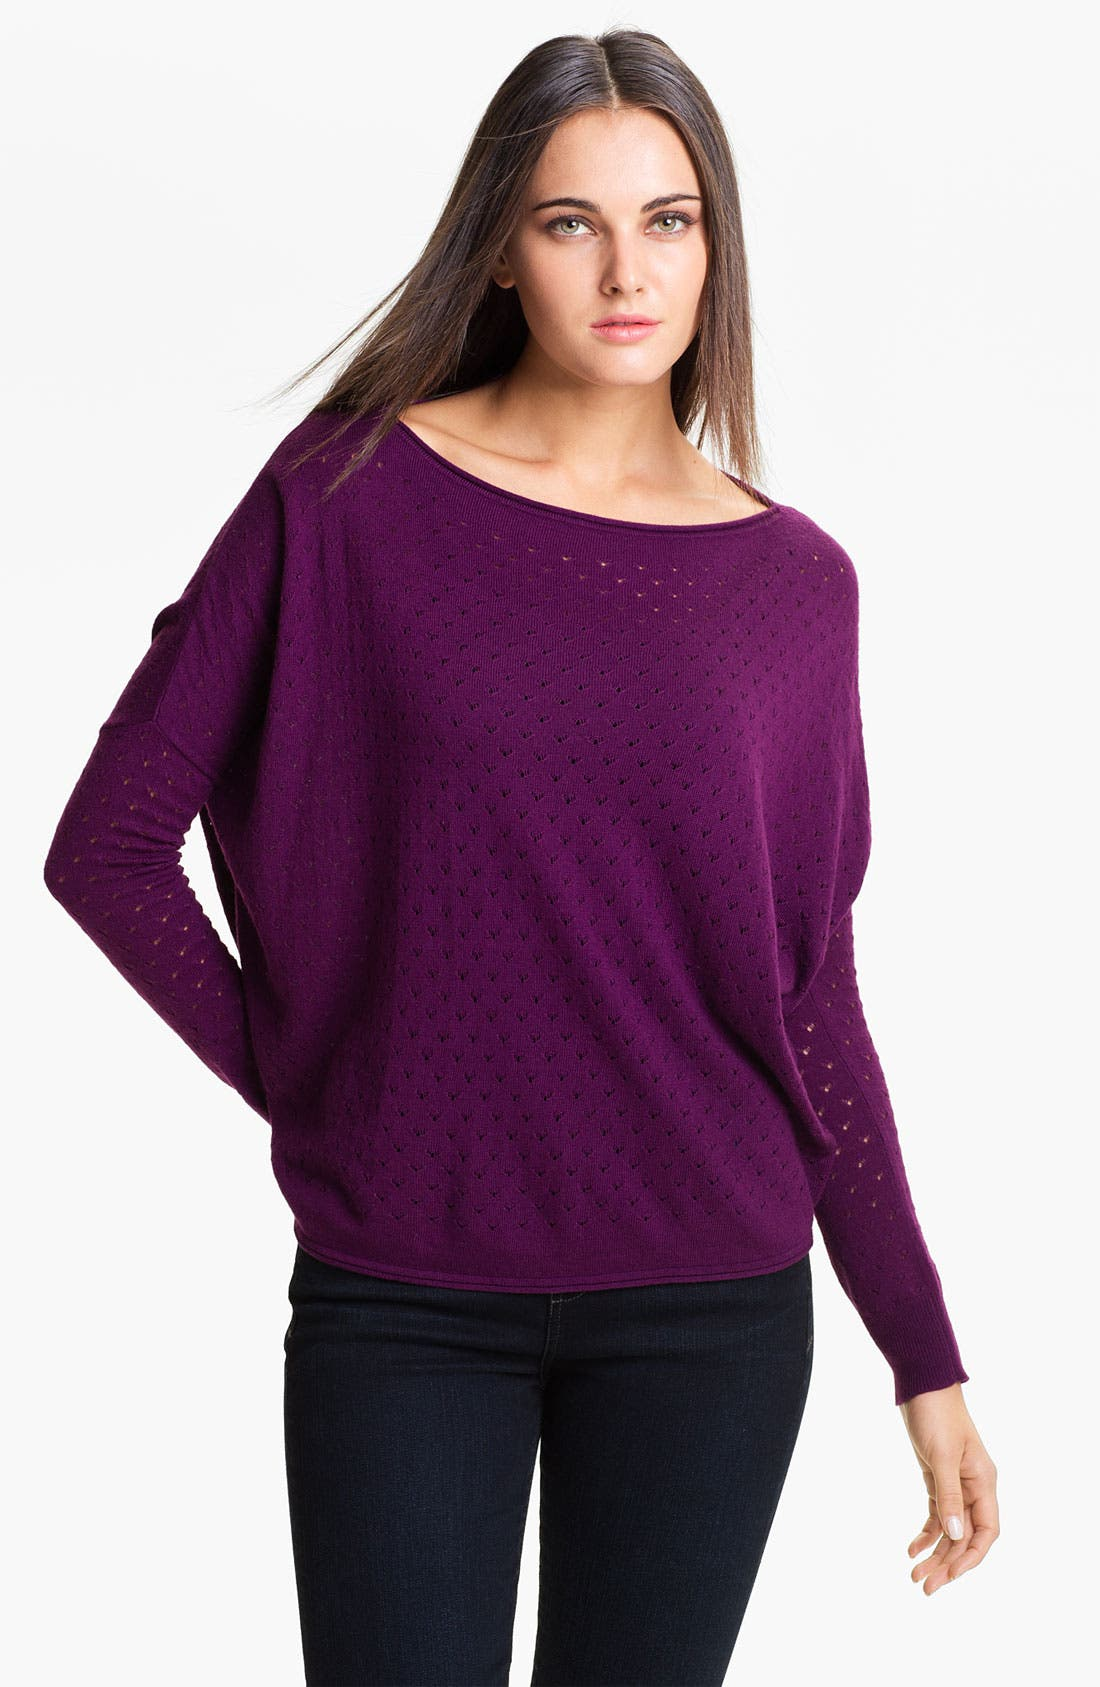 Alternate Image 1 Selected - Vince Camuto Pointelle Sweater (Online Exclusive)